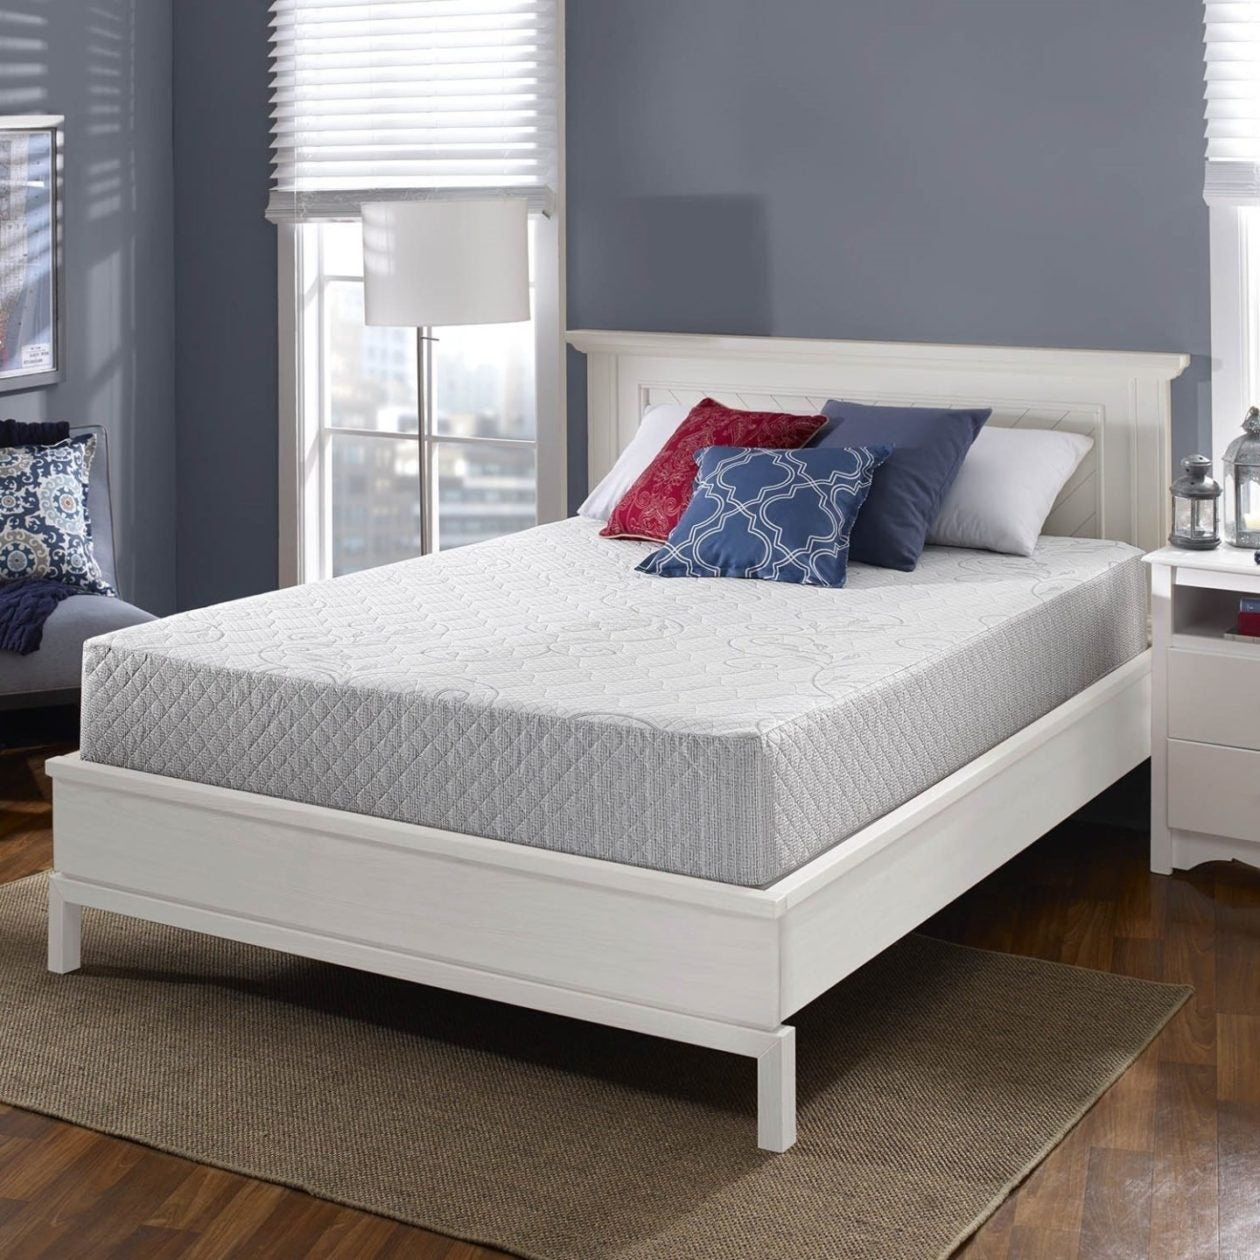 white bedframe with grey memory foam mattress